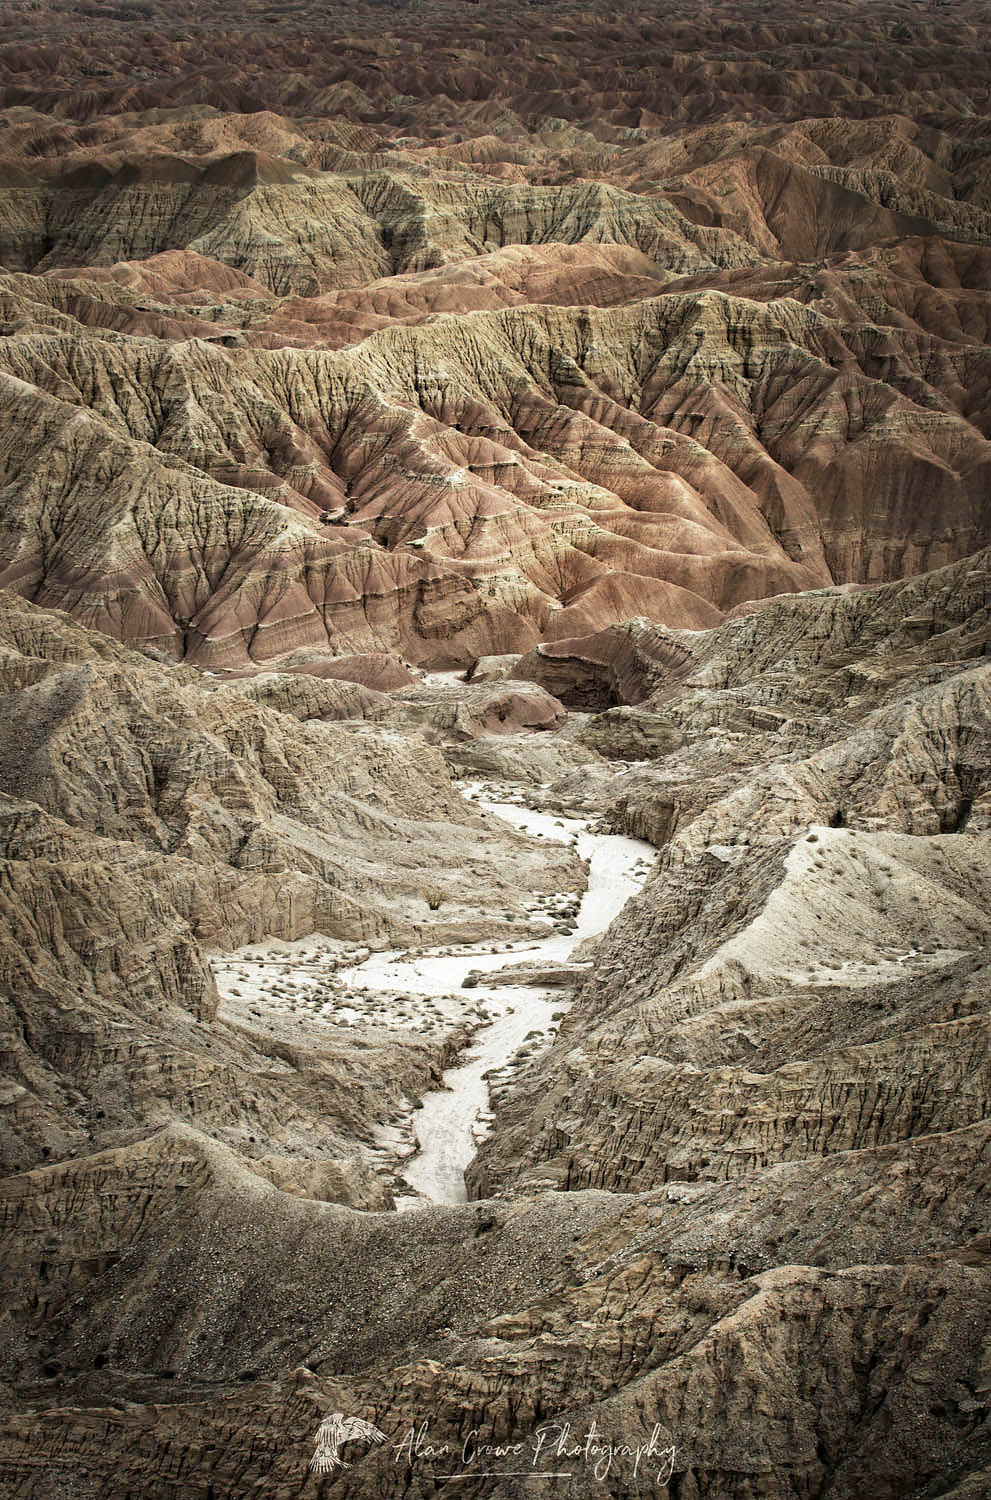 Borrego Badlands, California